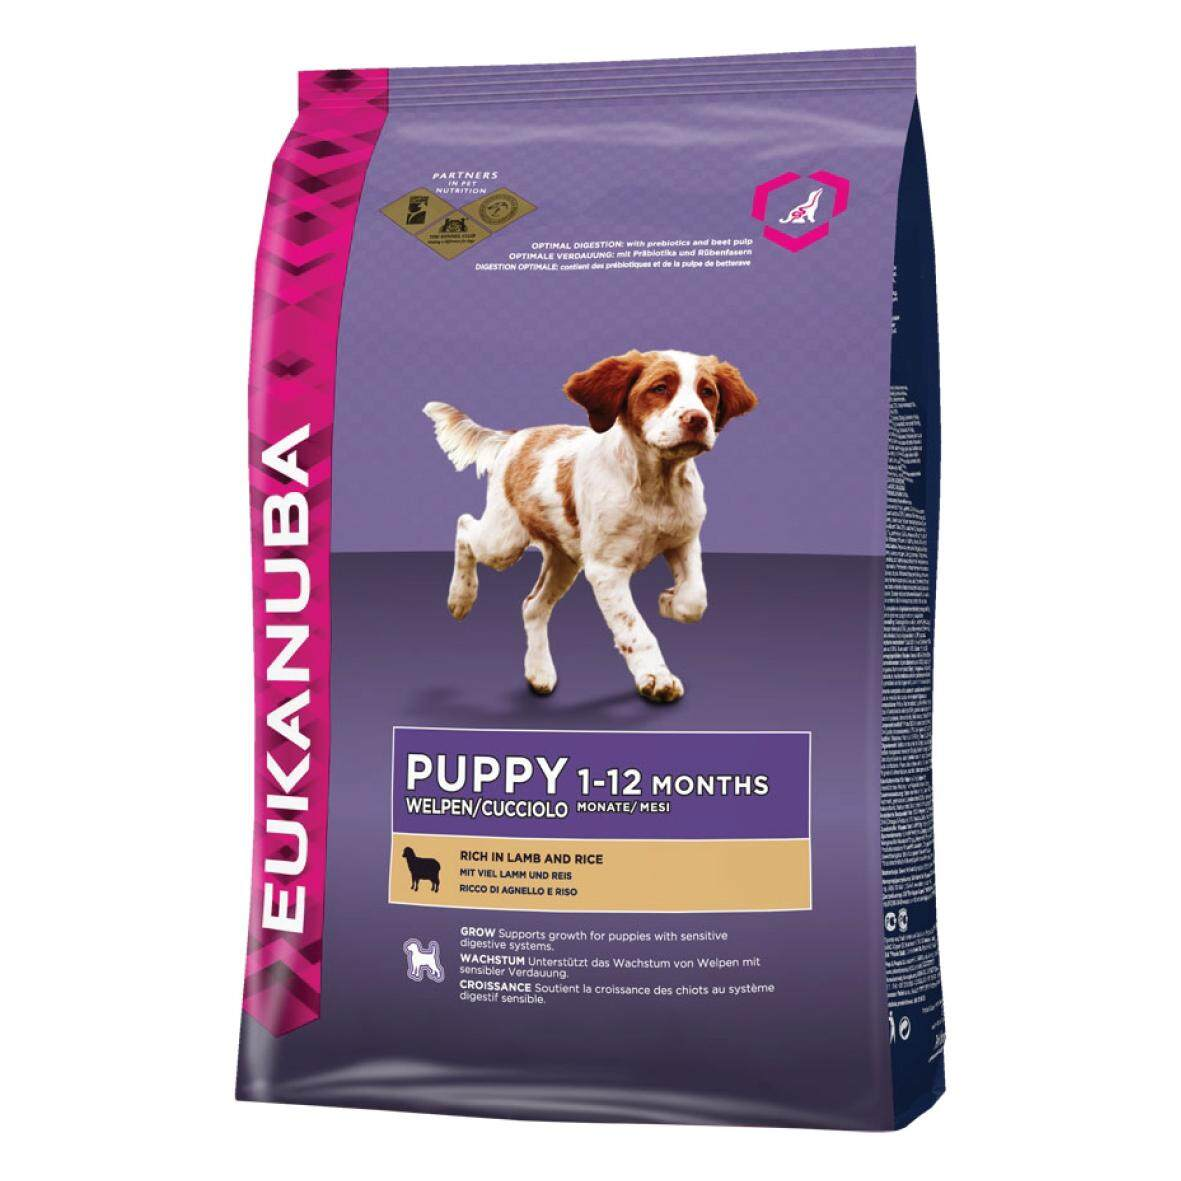 [EUKANUBA] LIFESTAGE FORMULAS Natural Lamb & Rice Puppy Food - 12KG